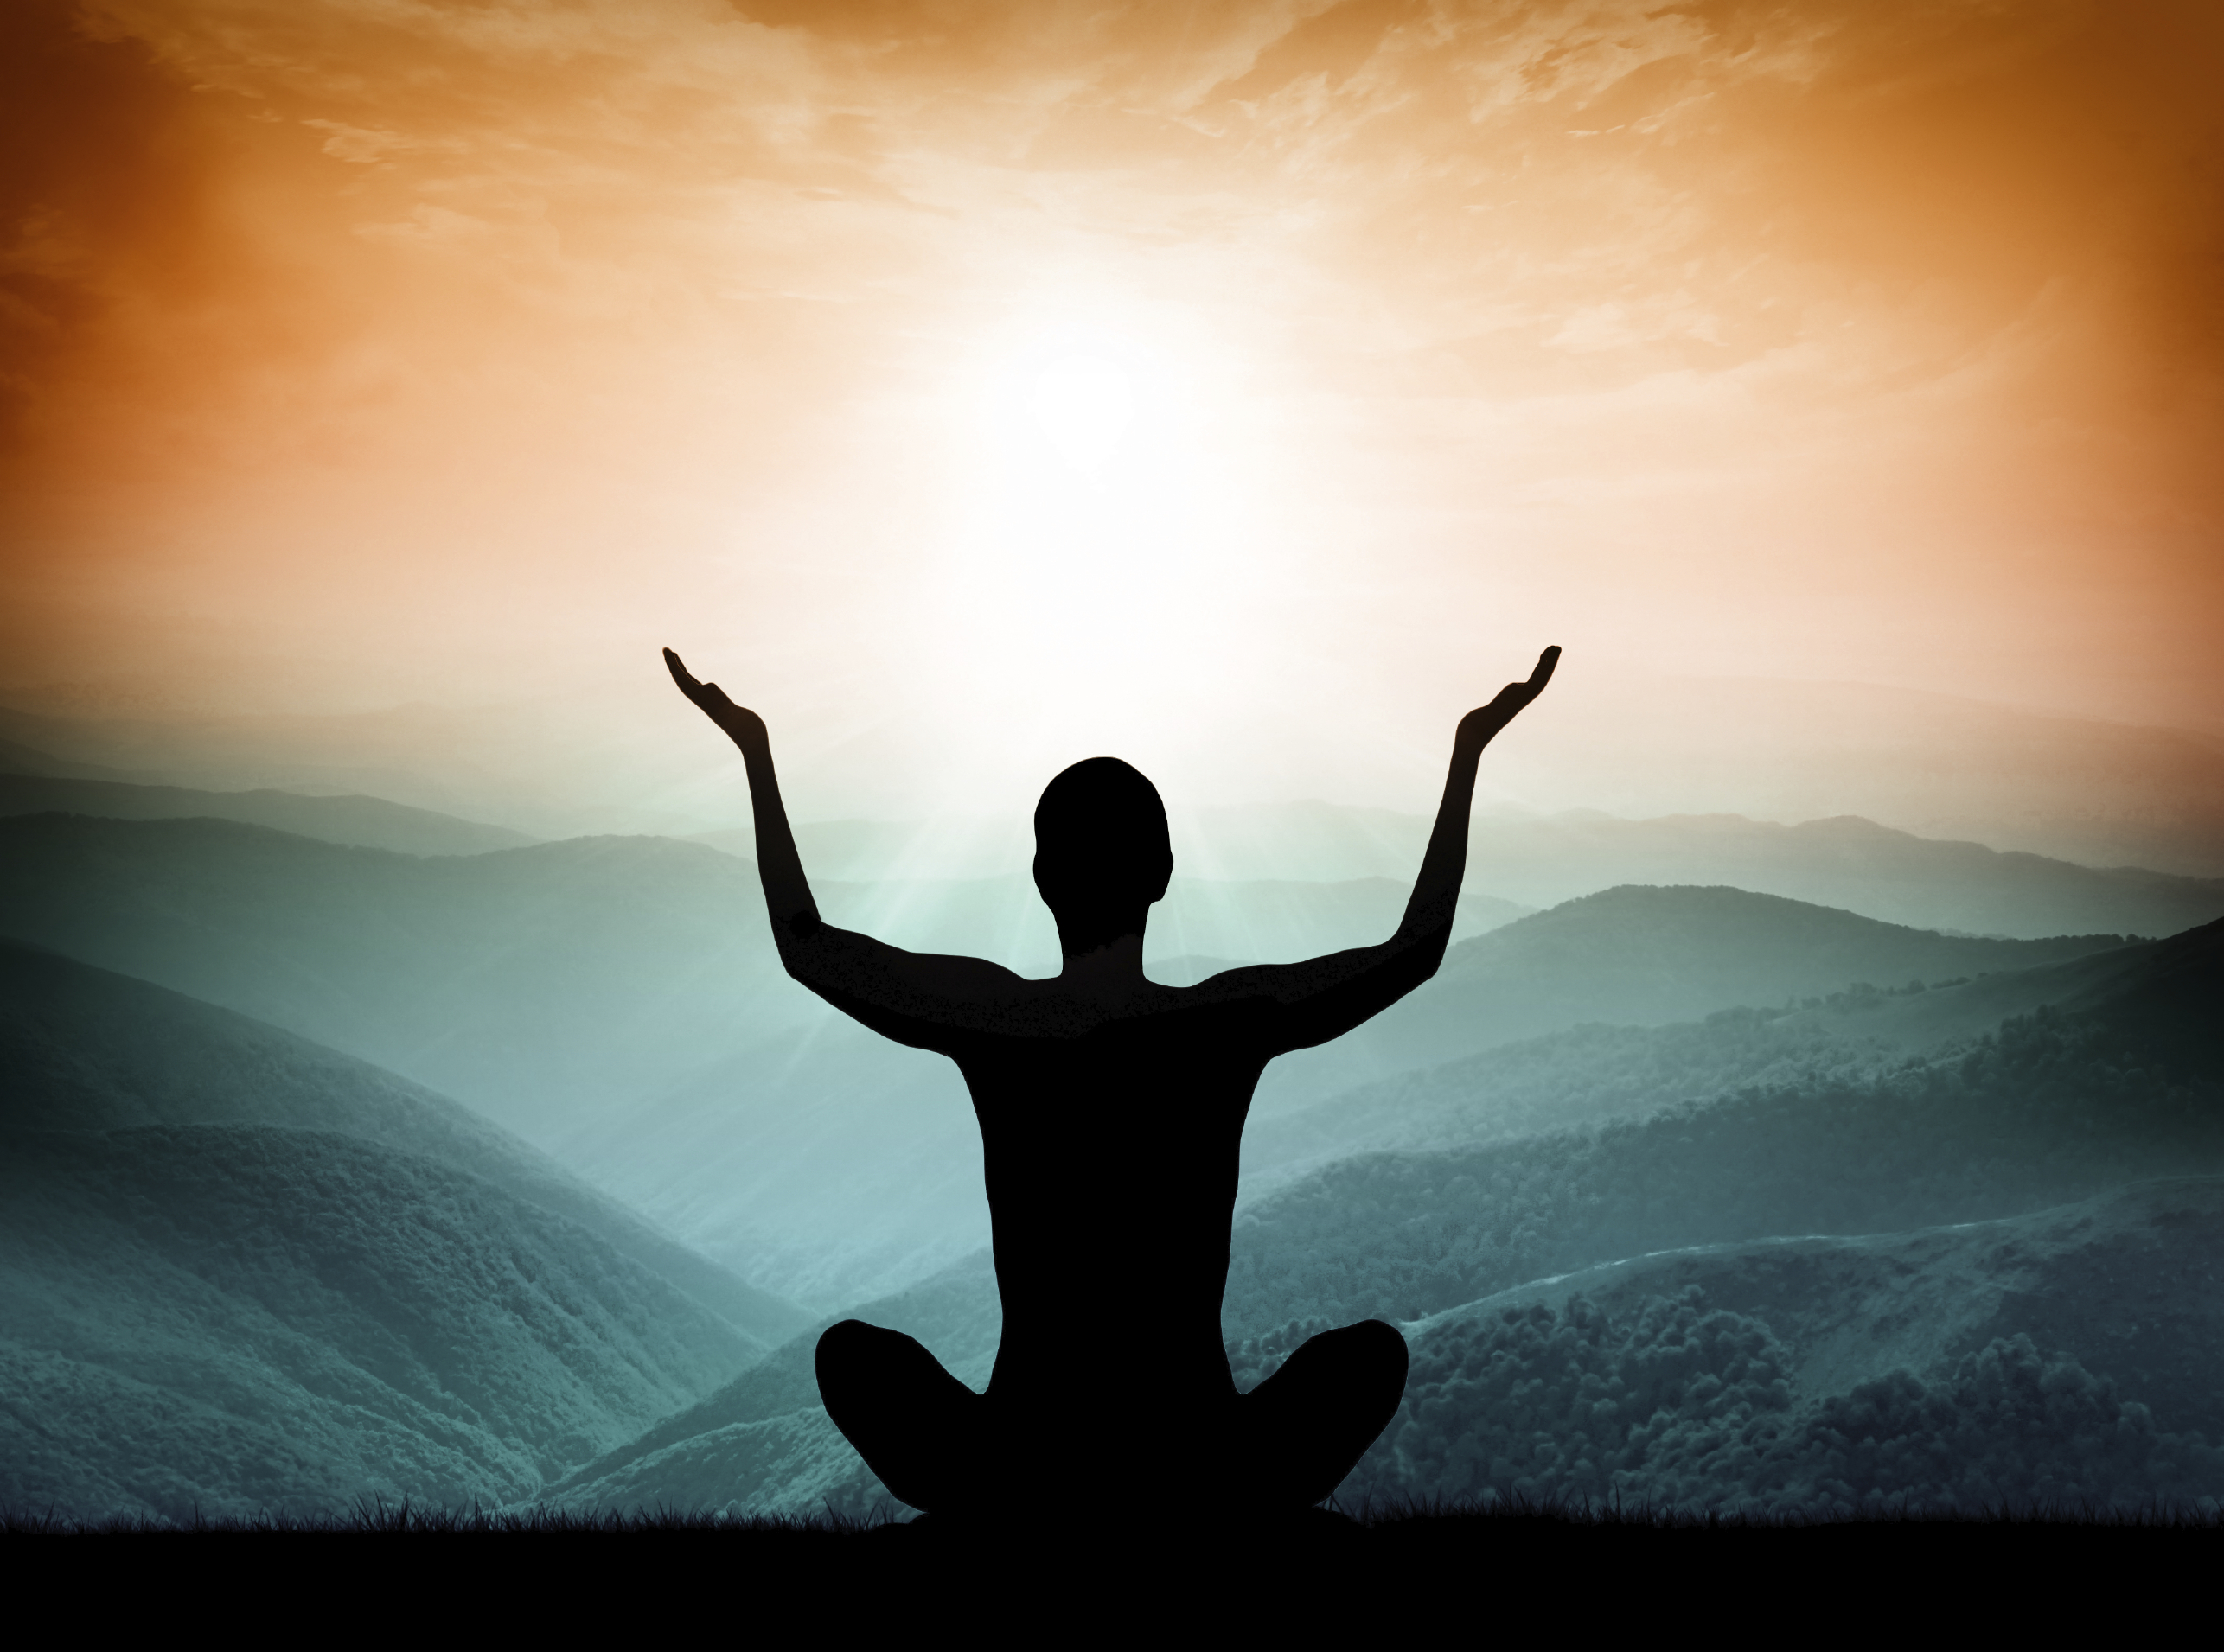 Superhuman Energy Cultivated by Meditators: It's Science